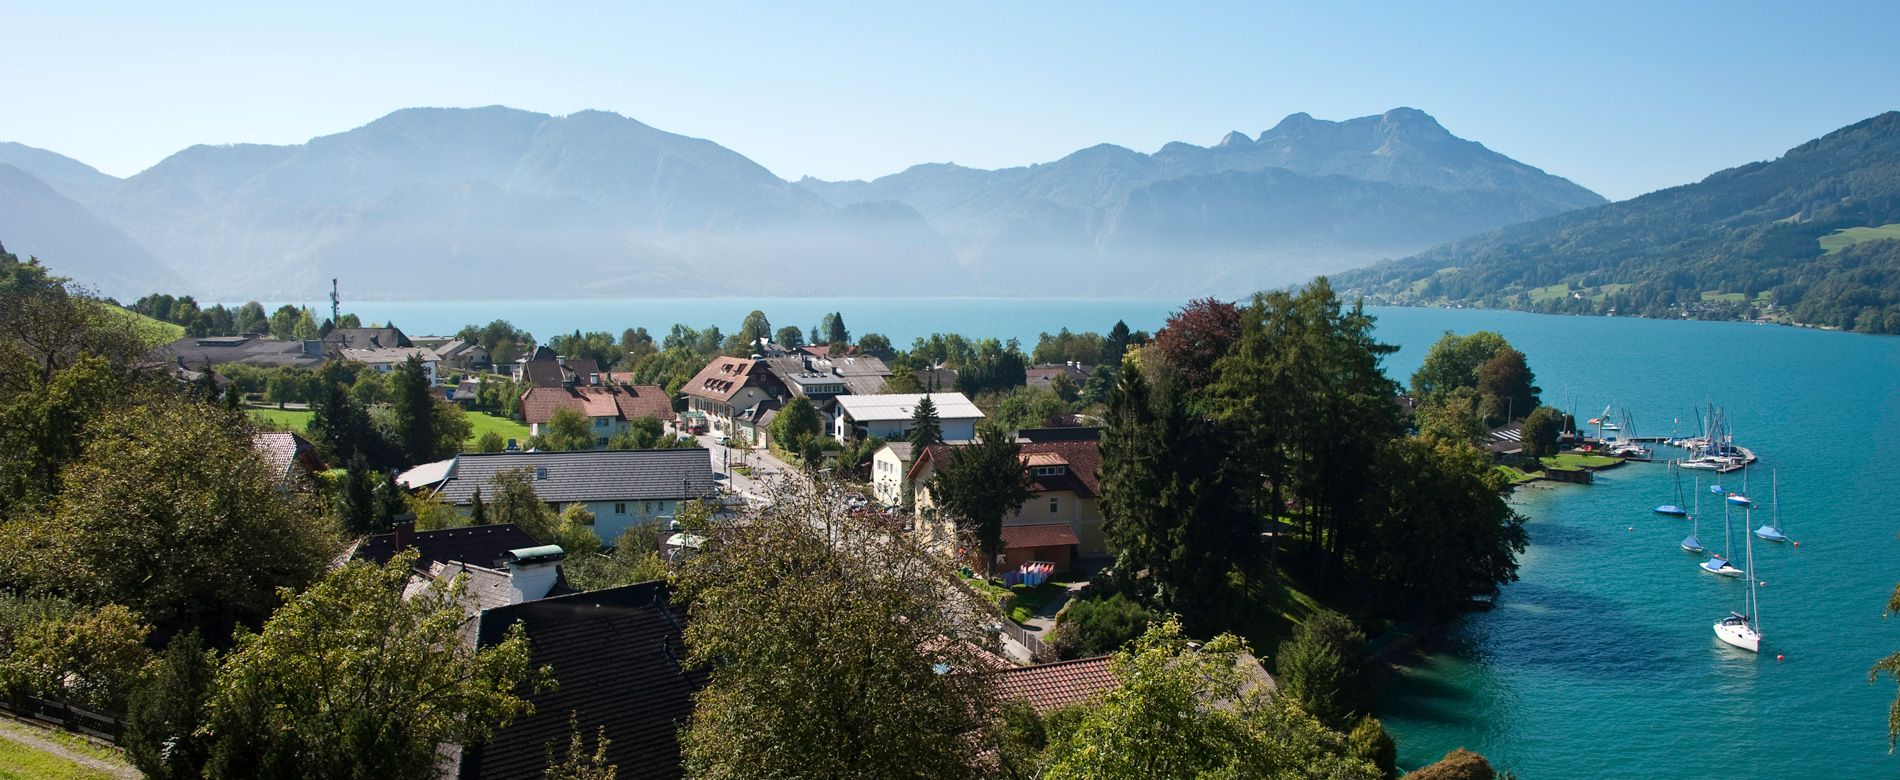 Ort am Attersee Panoramablick